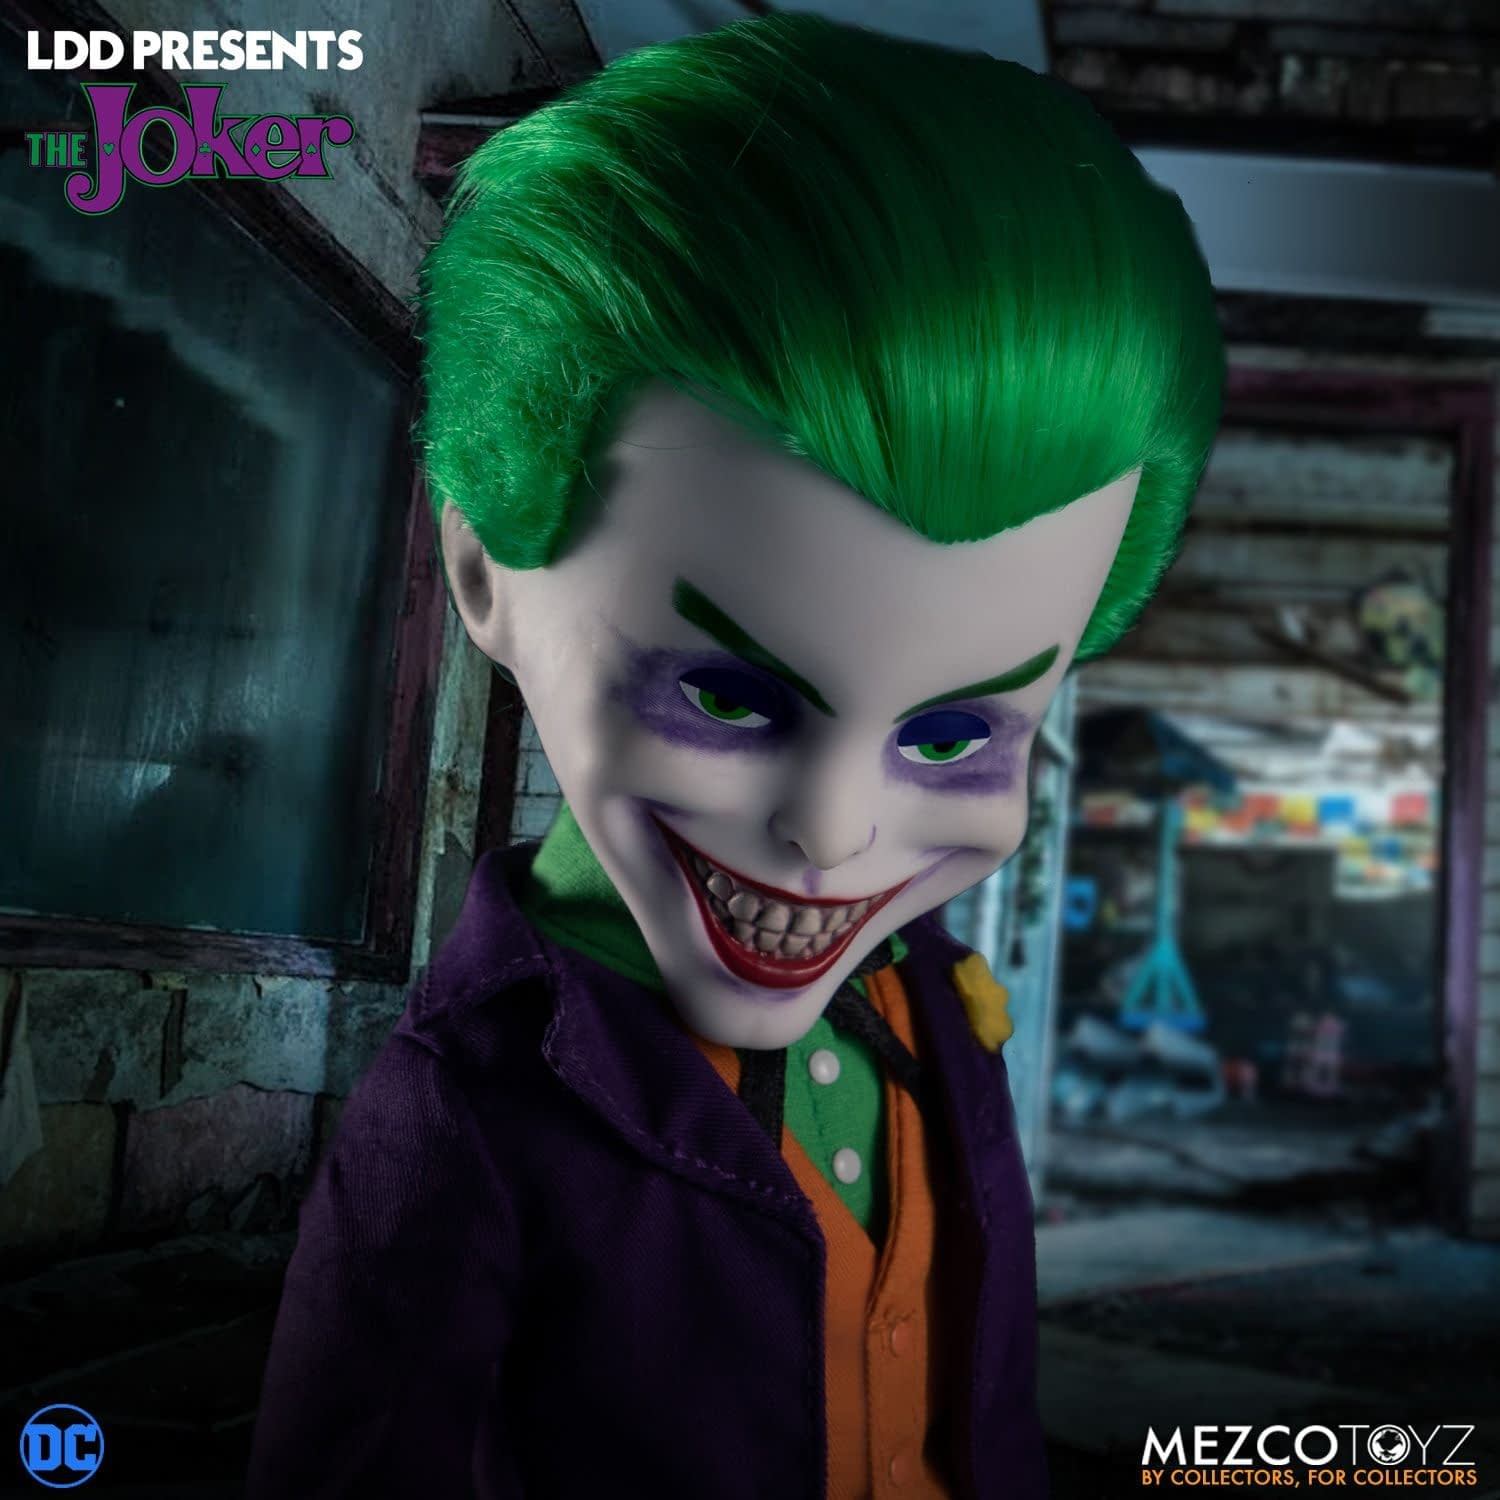 Joker Makes His Arrival in Gotham with New LDD from Mezco